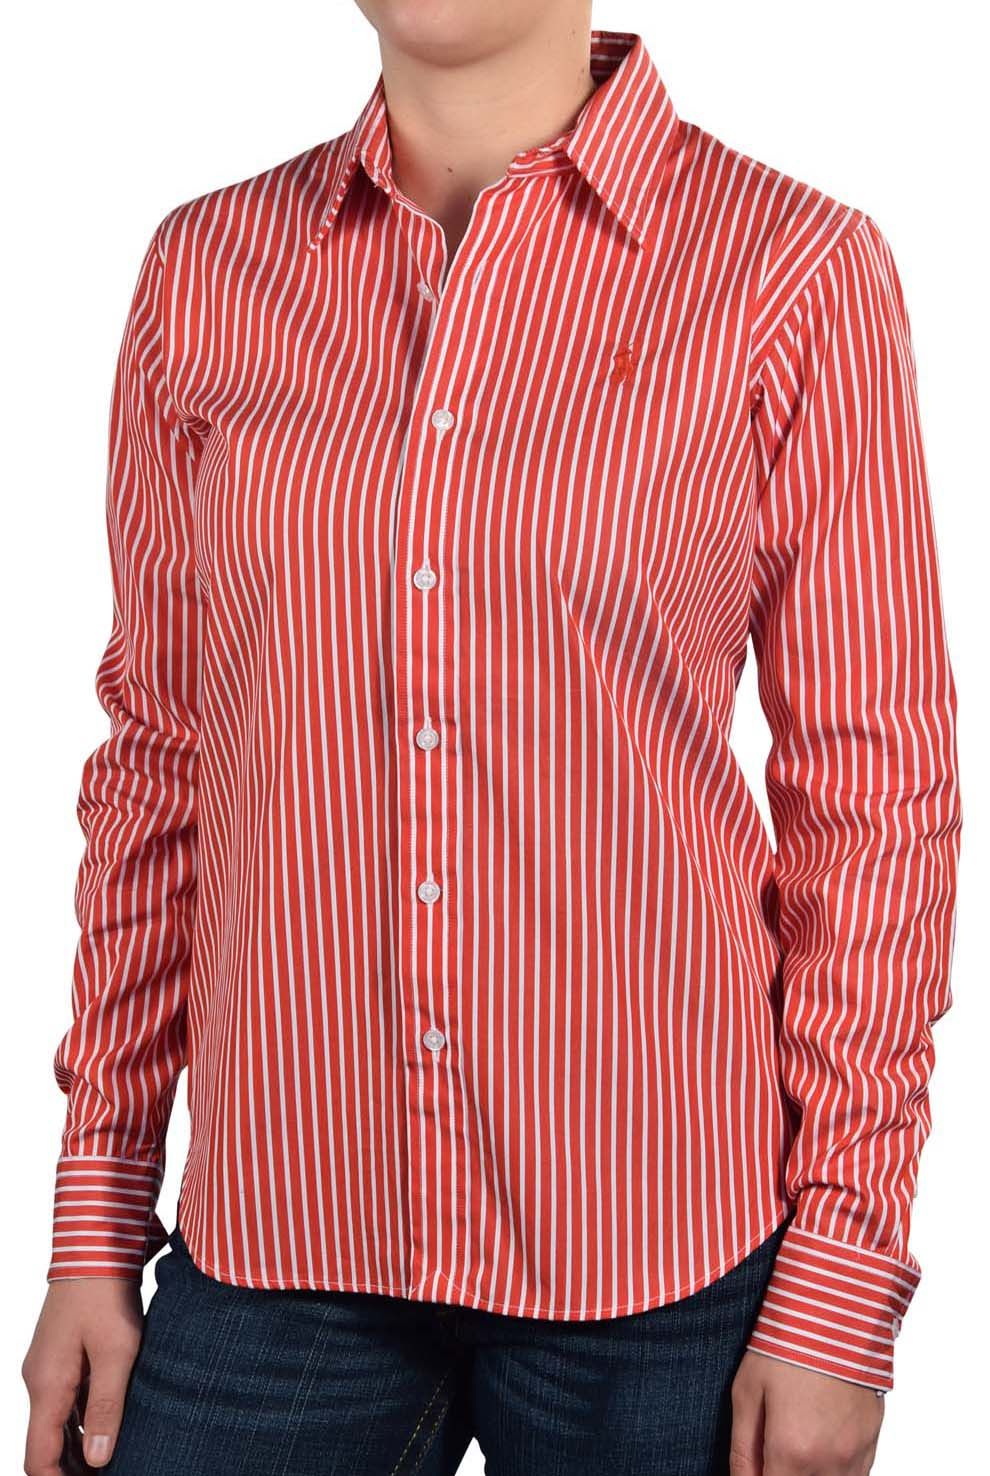 Polo ralph lauren women 39 s striped button down dress shirt for Women s button down dress shirts